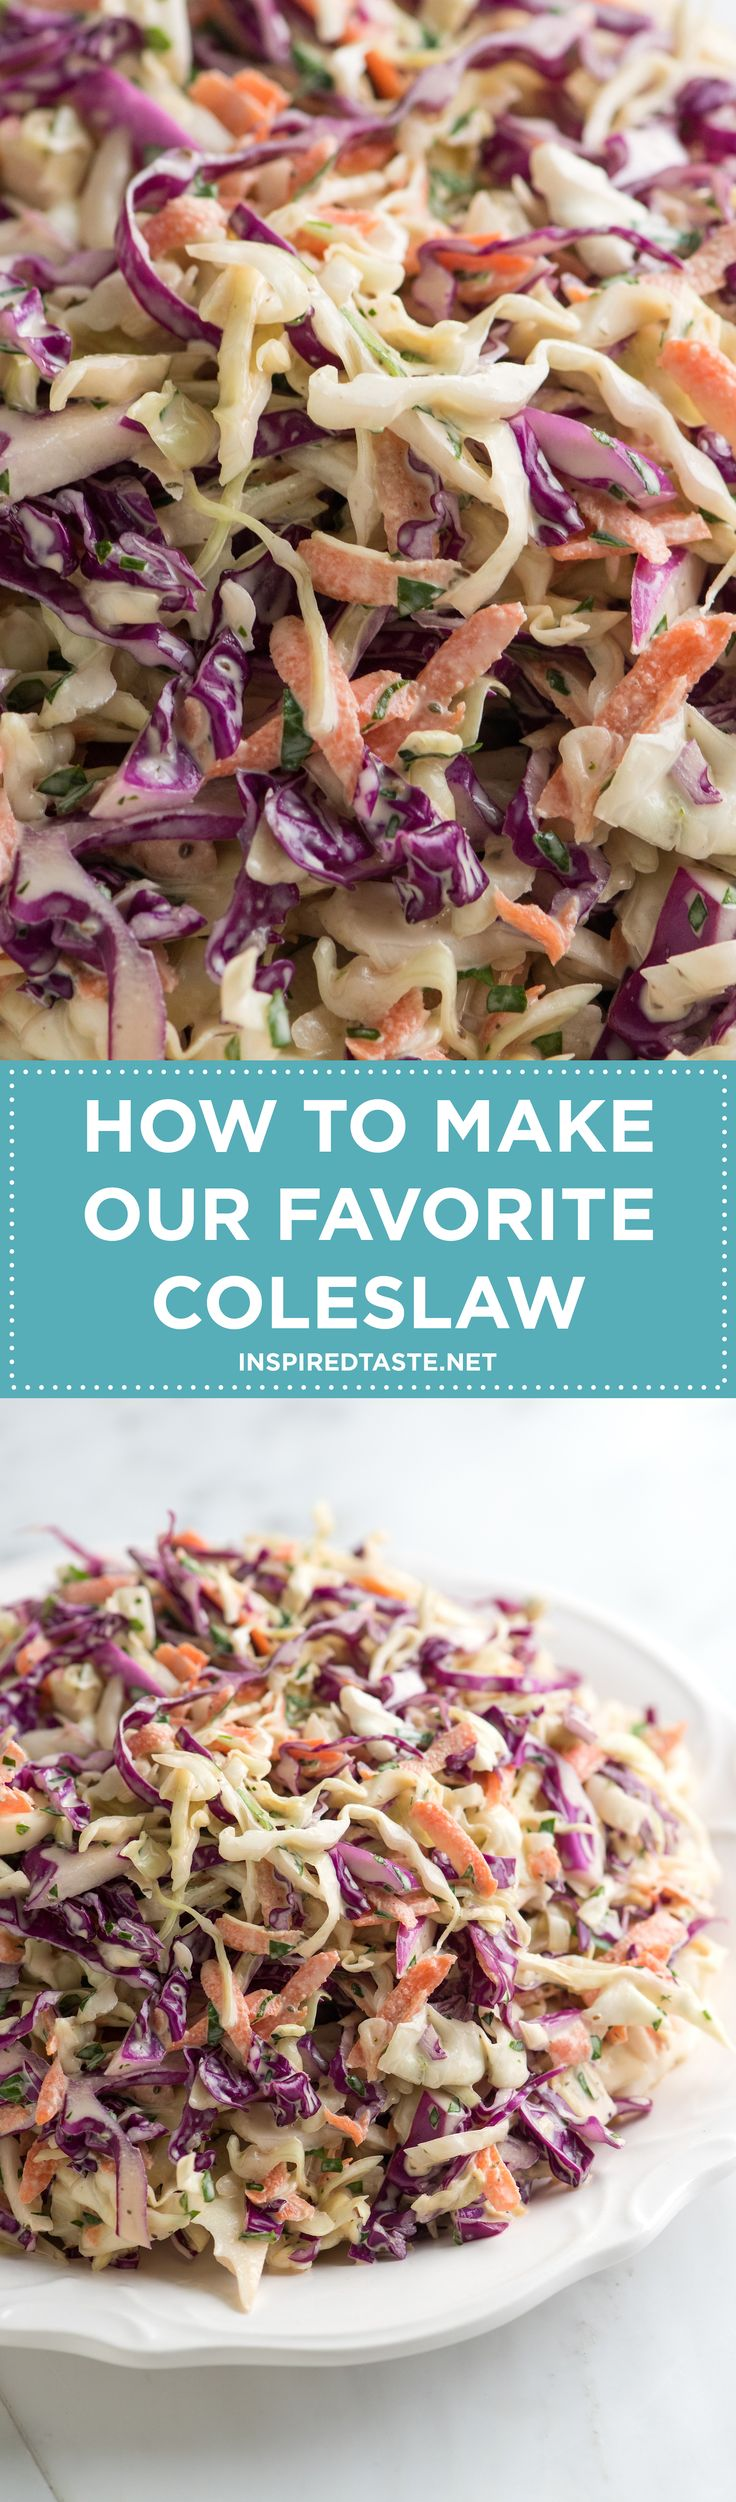 How to make our favorite coleslaw recipe on inspiredtaste.net / @inspiredtaste